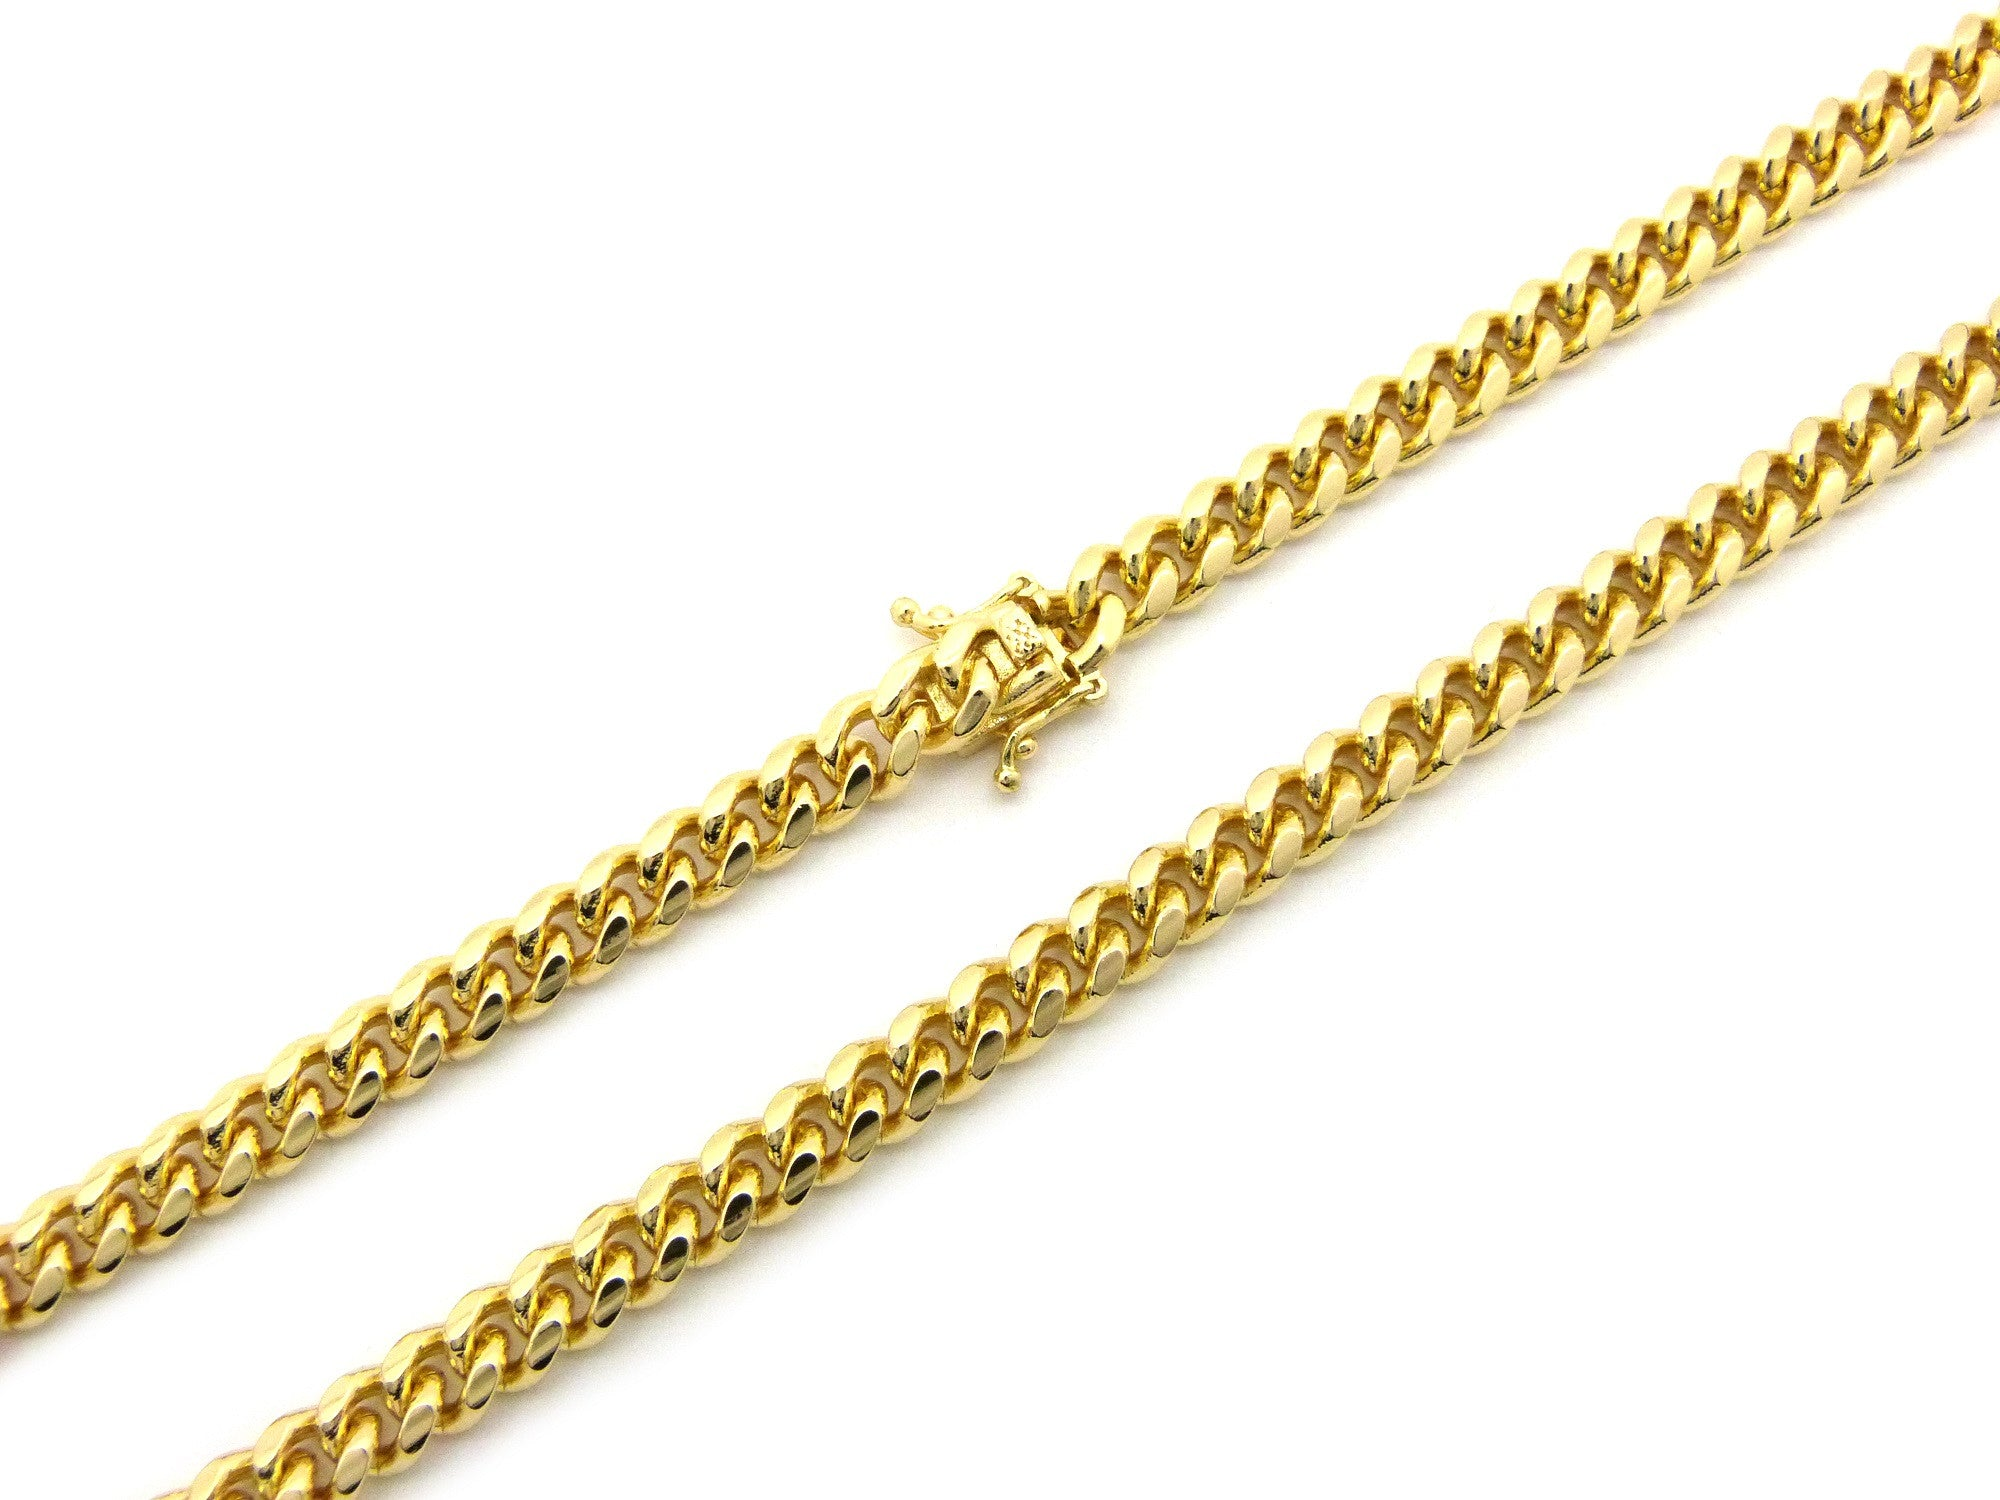 14k Gold Plated Miami Cuban With Box Clasp 30 Inches